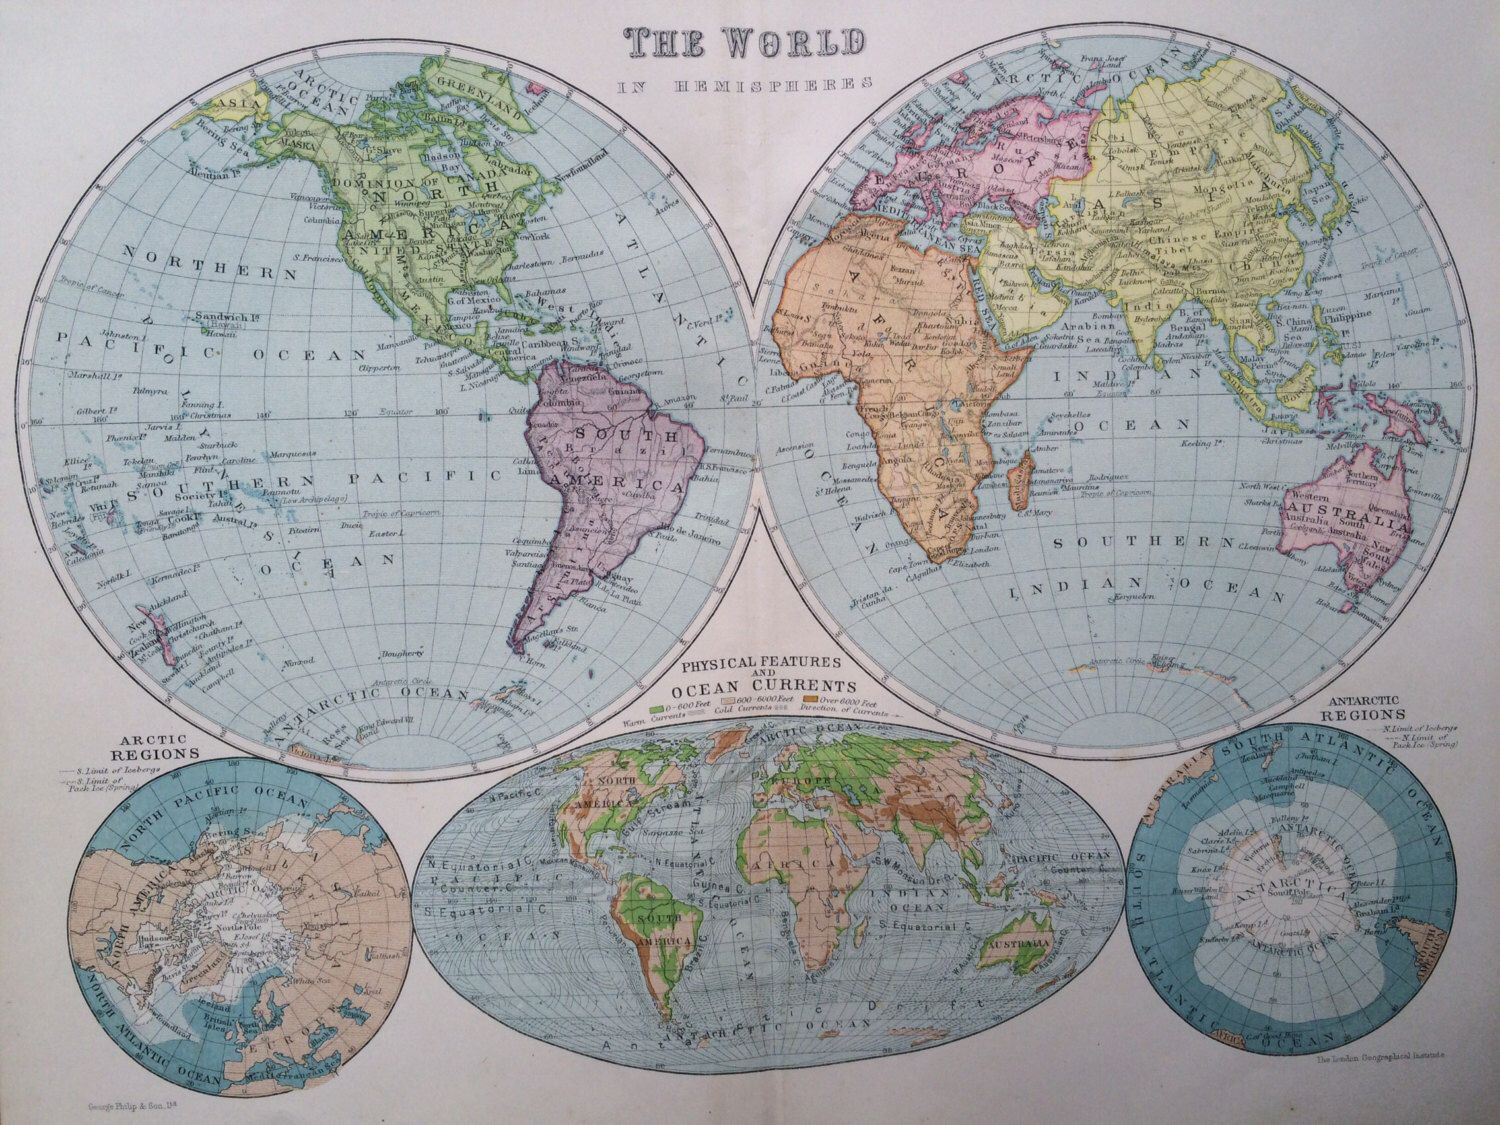 Original antique world map c1919 105 x 135 inches philips original antique world map c1919 105 x 135 inches philips atlas gumiabroncs Gallery